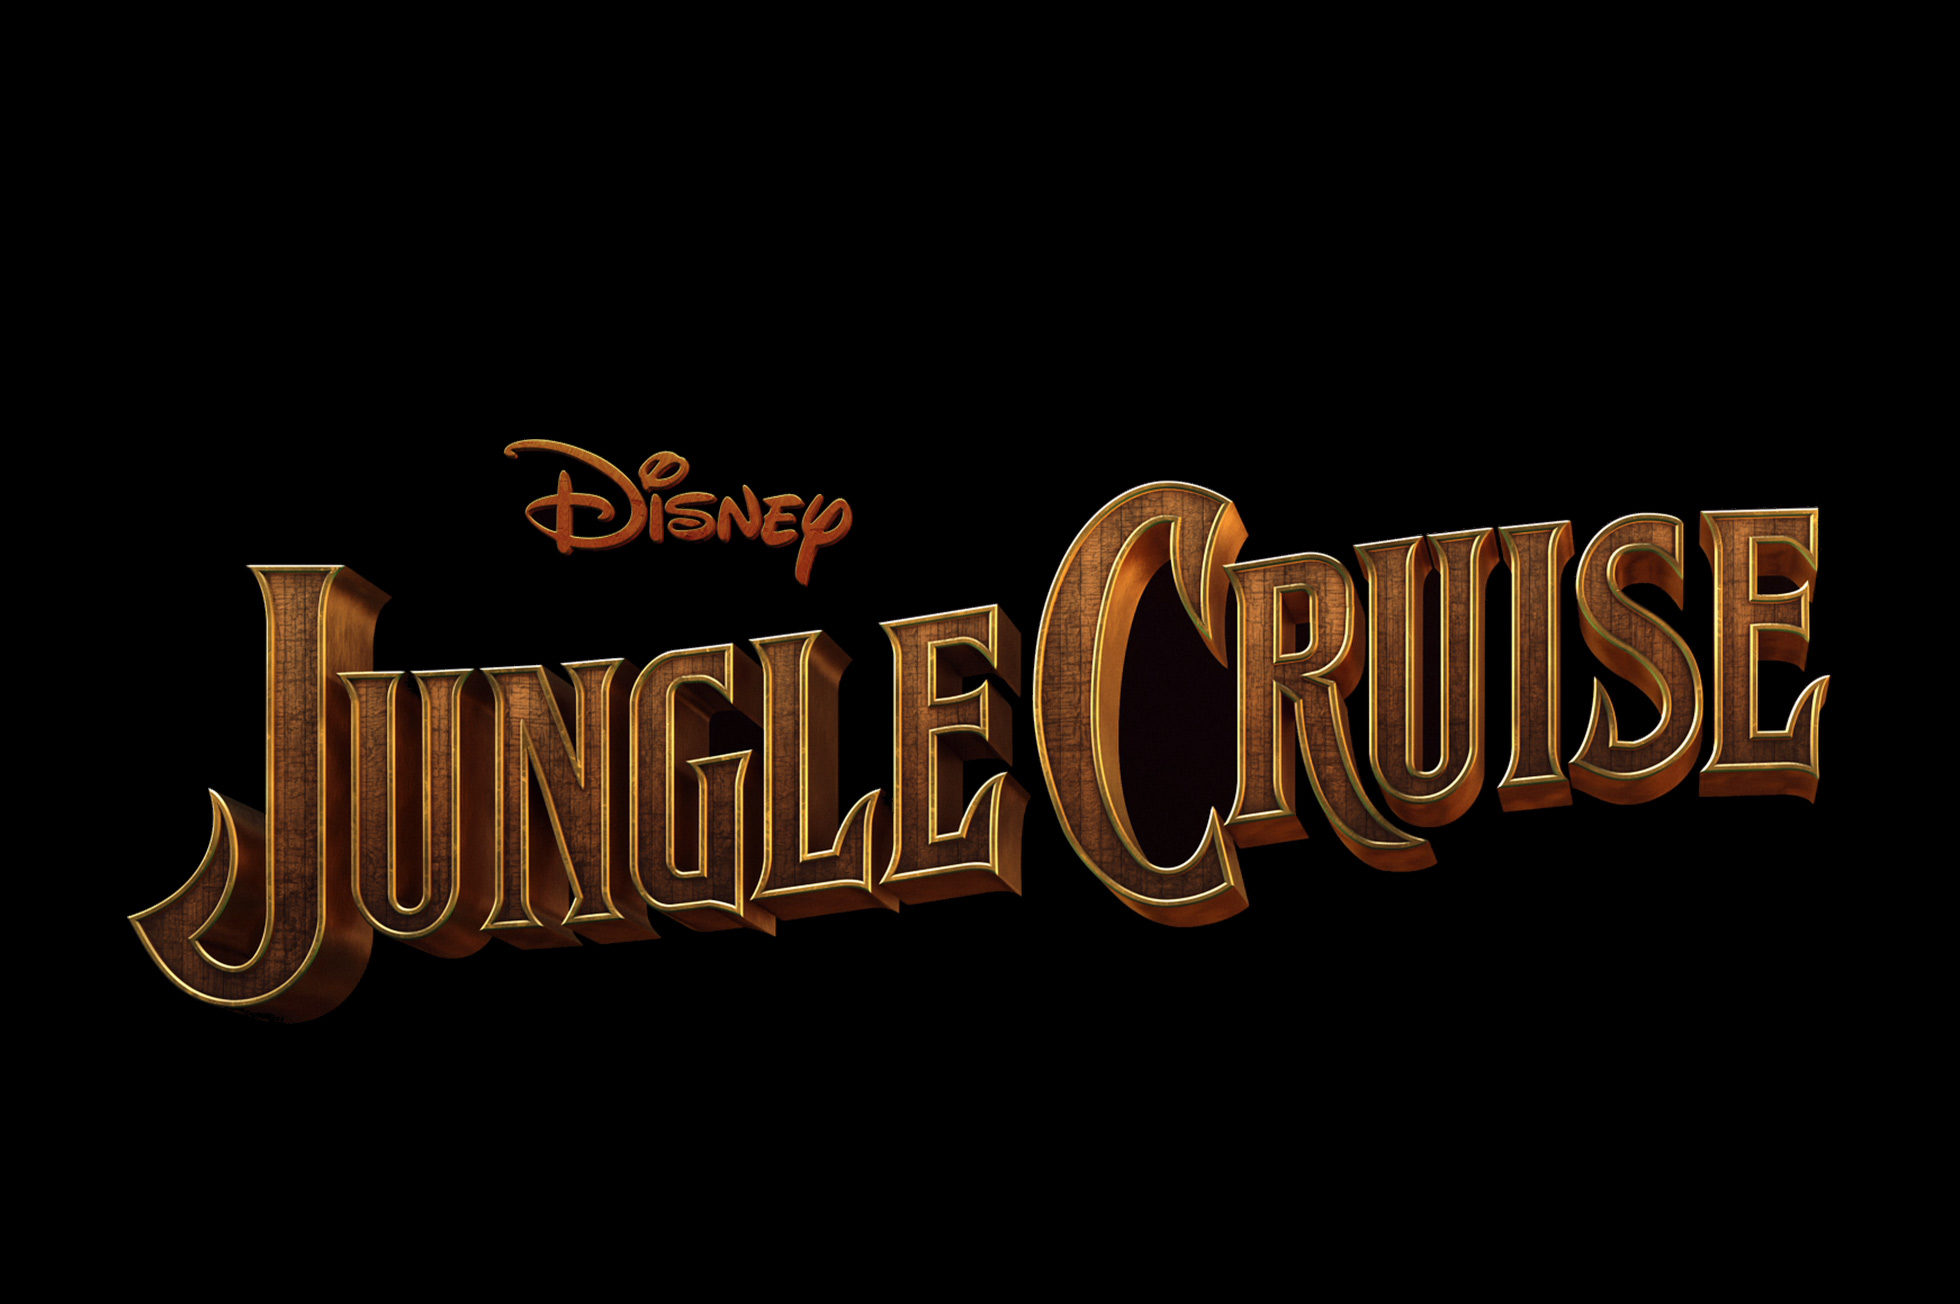 'Jungle Cruise' - landscape artwork